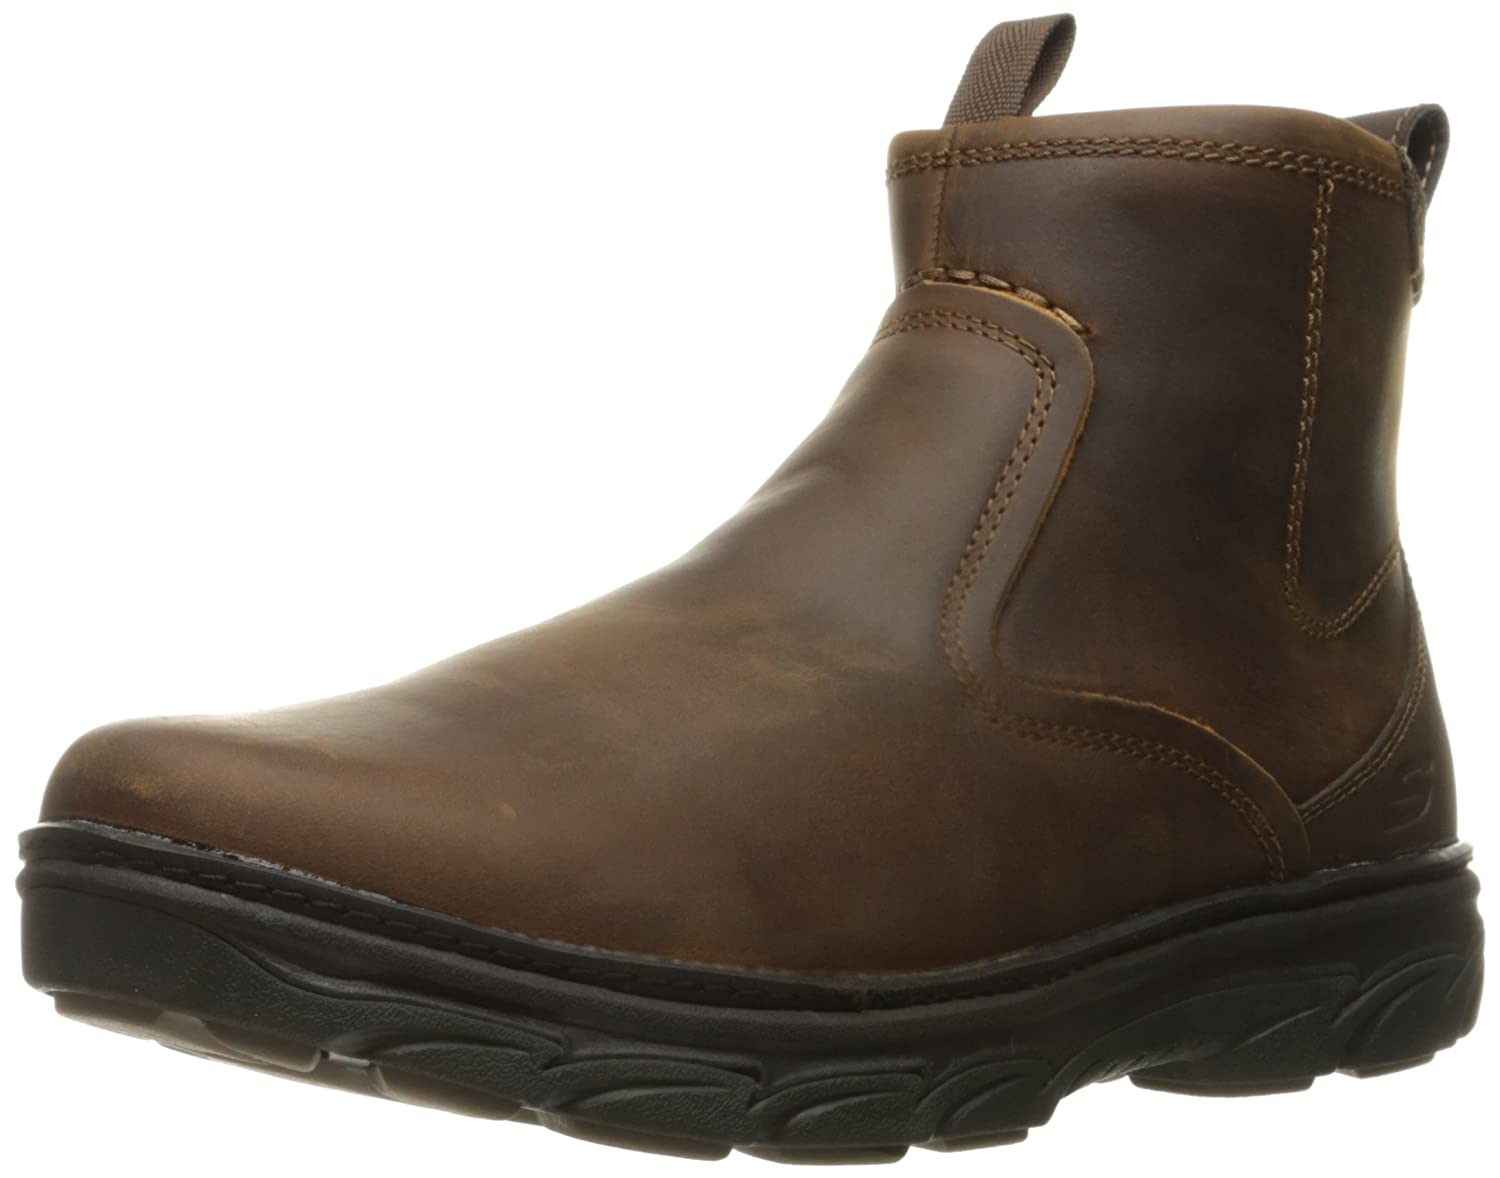 Skechers USA Men's Resment Korver Chukka Boot